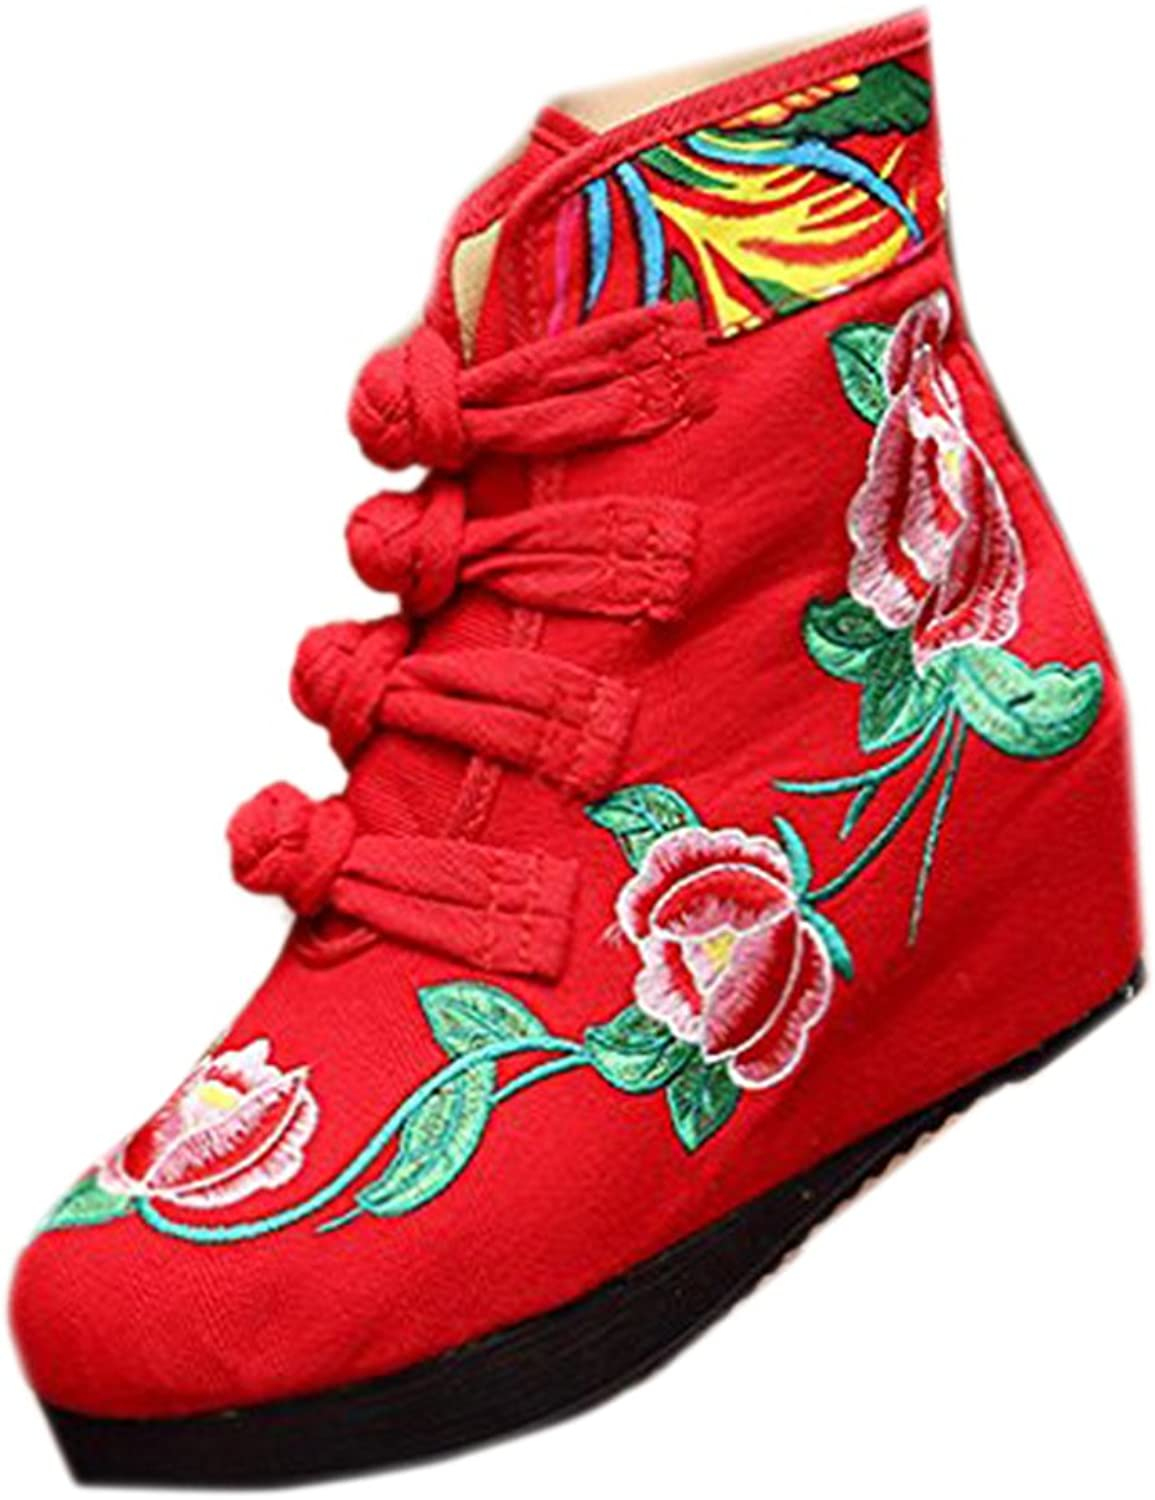 Shenghuajie Four shoeslace Vintage Beijing Cloth shoes Embroidered Boots red with Cotton